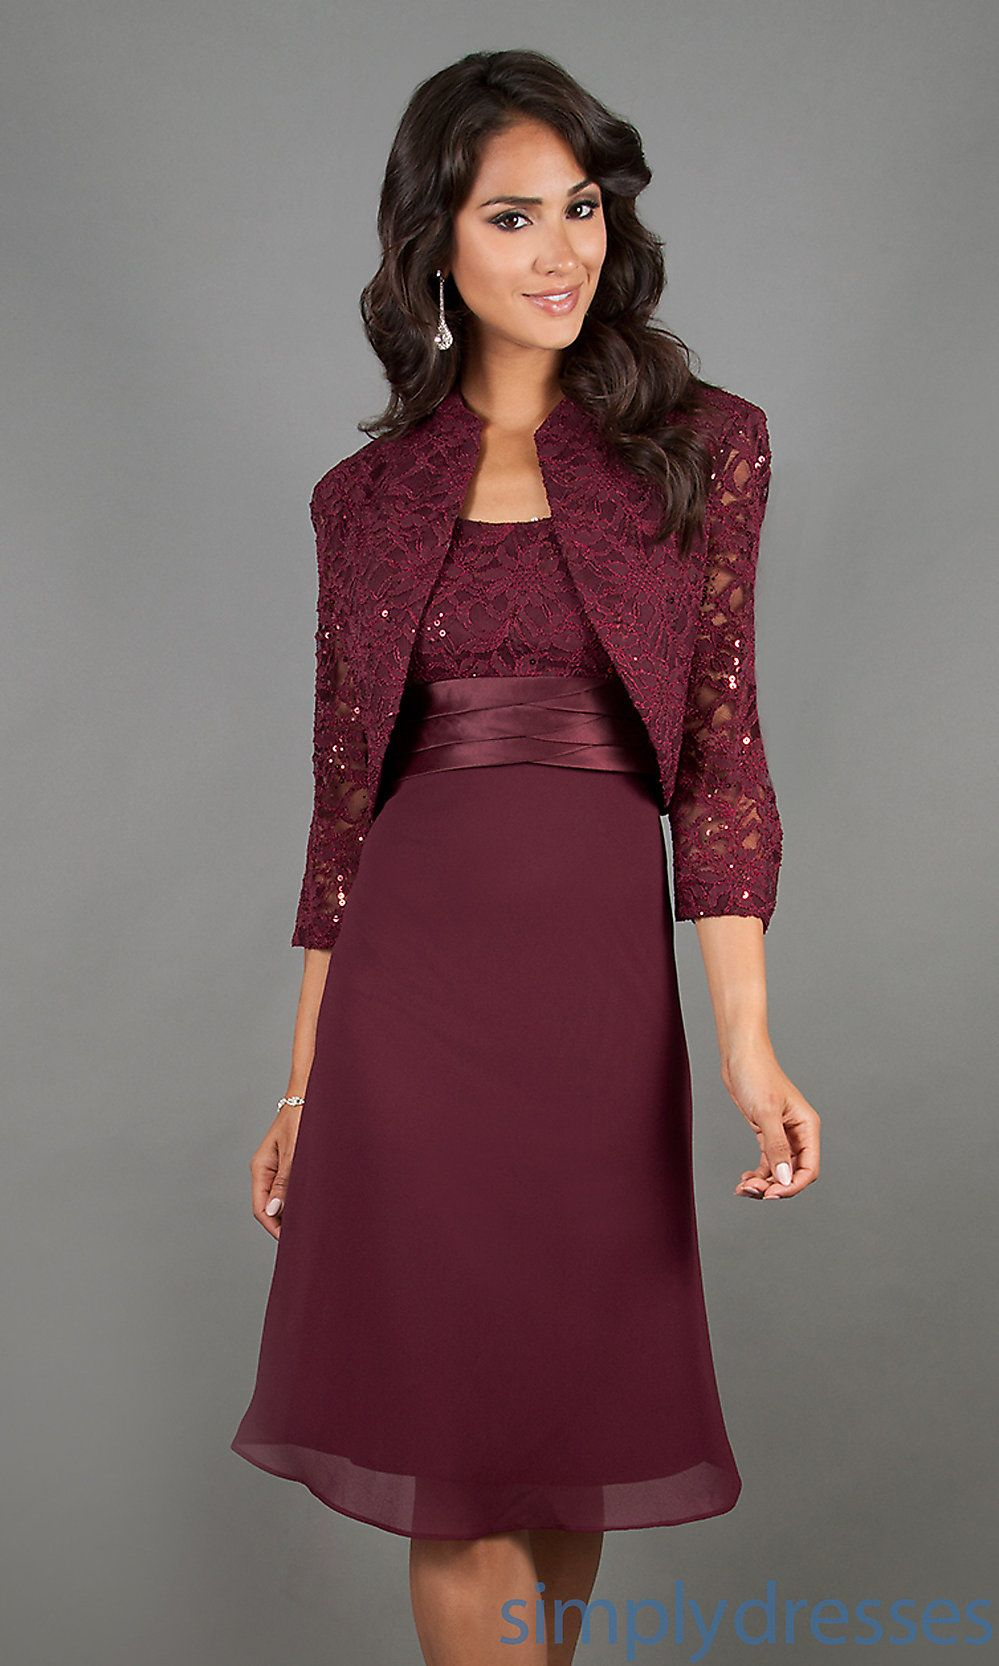 Knee Length Mother of the Bride Dress with Jacket- Simply Dresses ... 578755709c1c